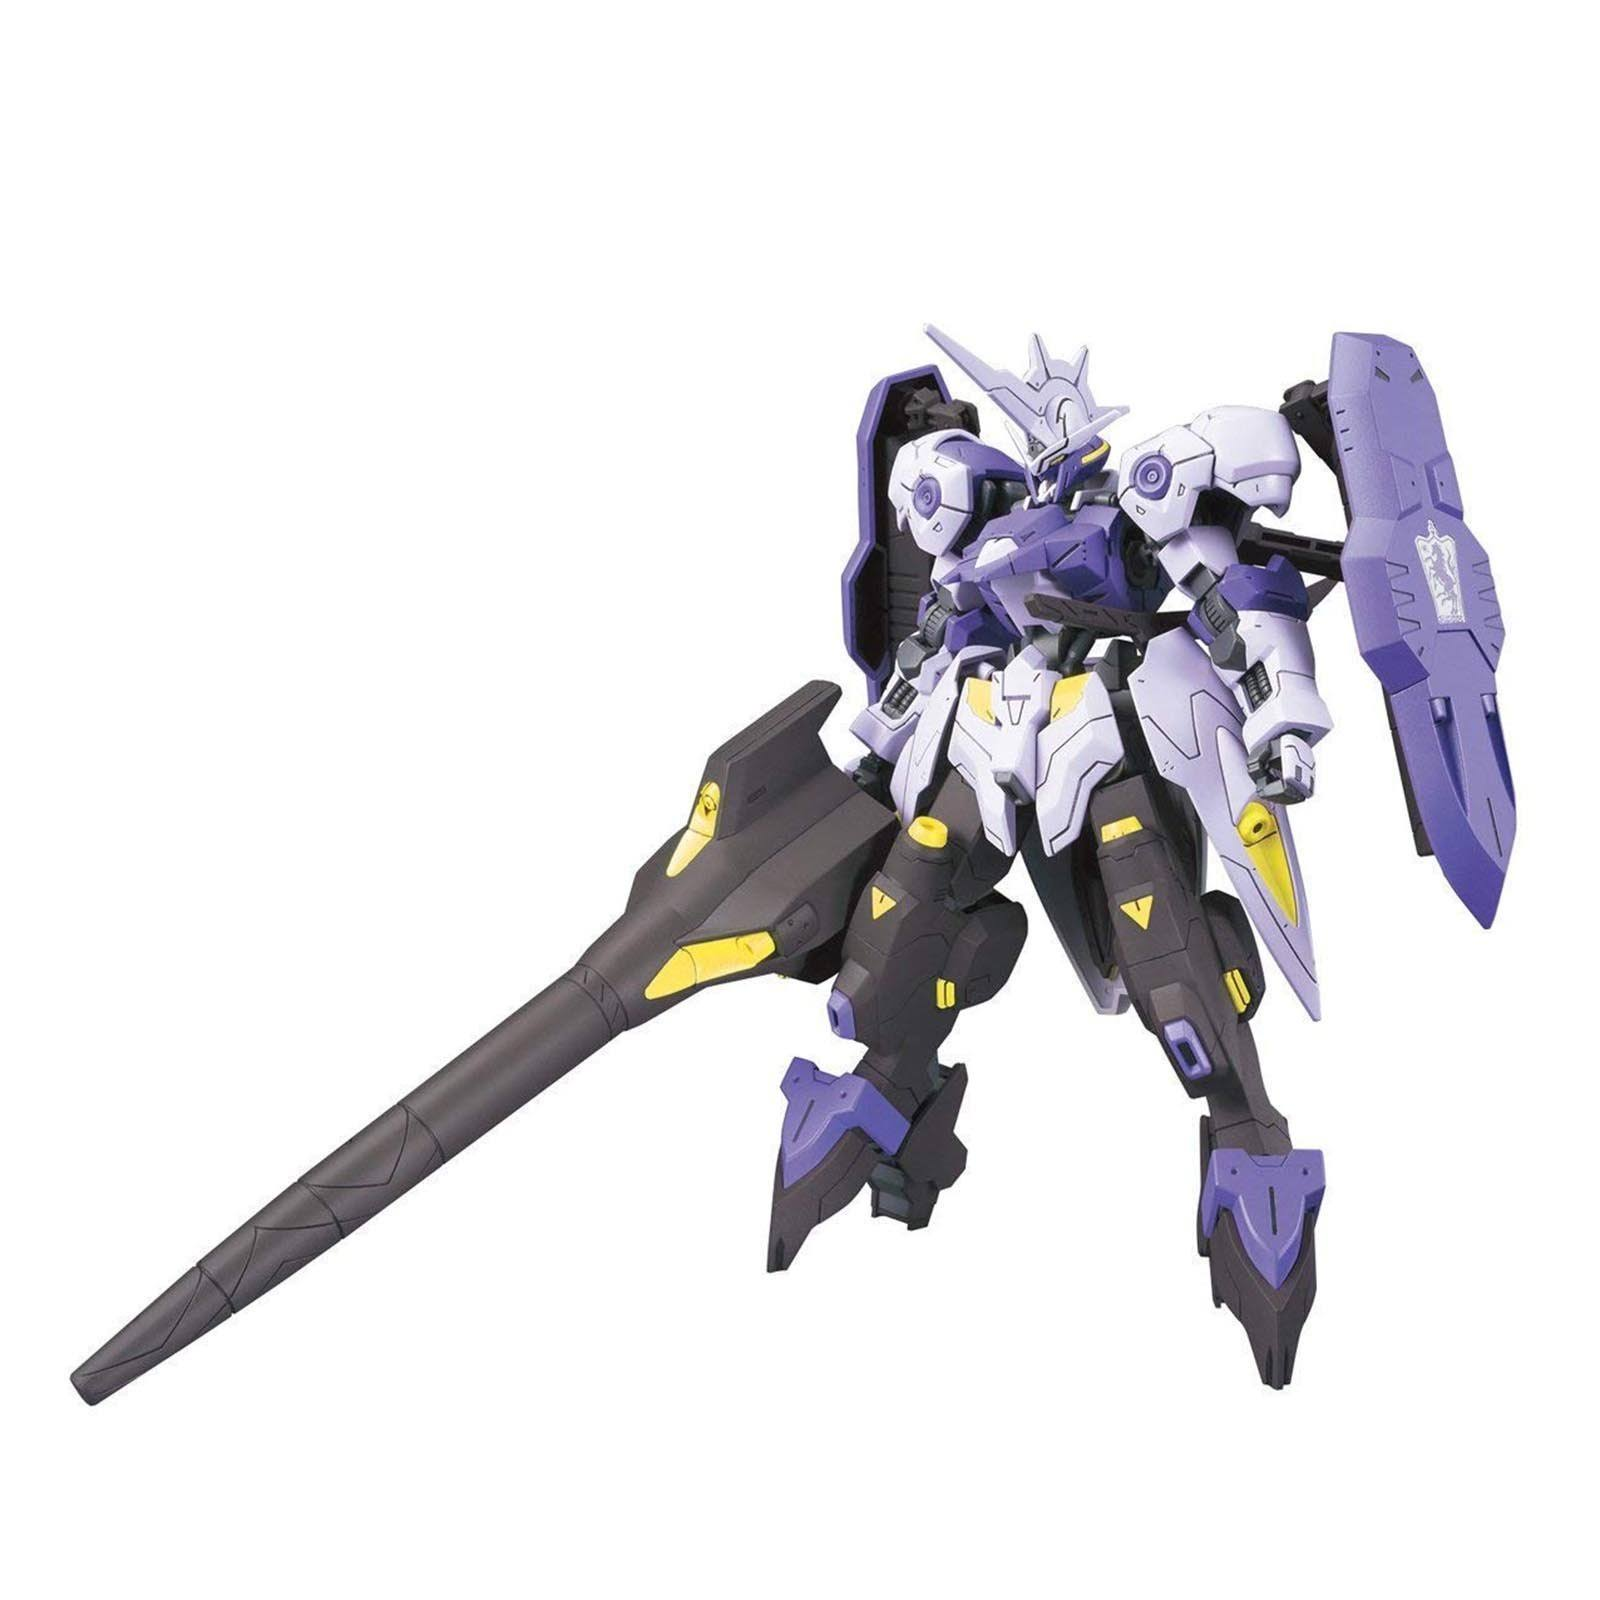 Bandai Kimaris Vidar HG Gundam Model Kit - Scale 1:144